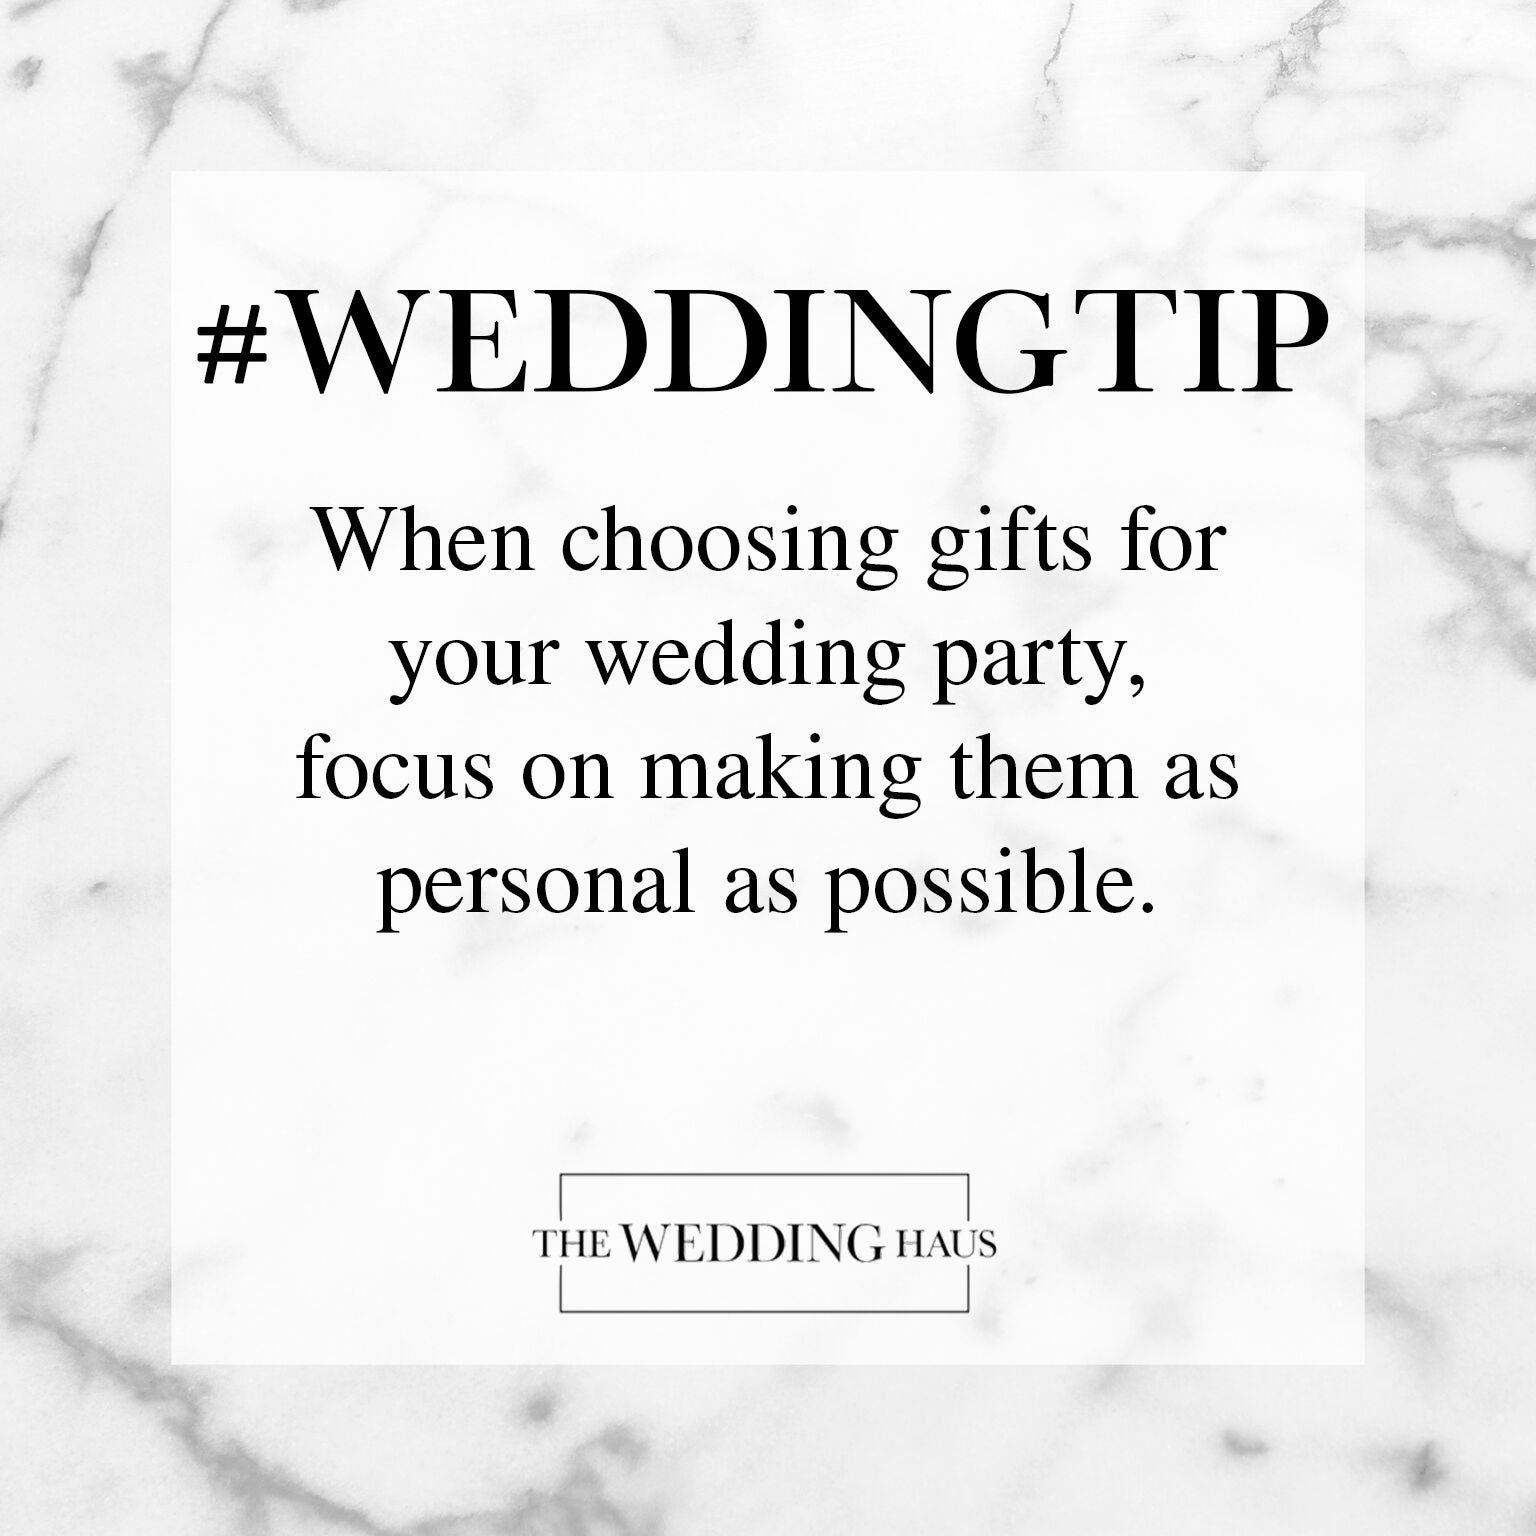 Wedding Party Gifts Wedding Tip from The Wedding Haus